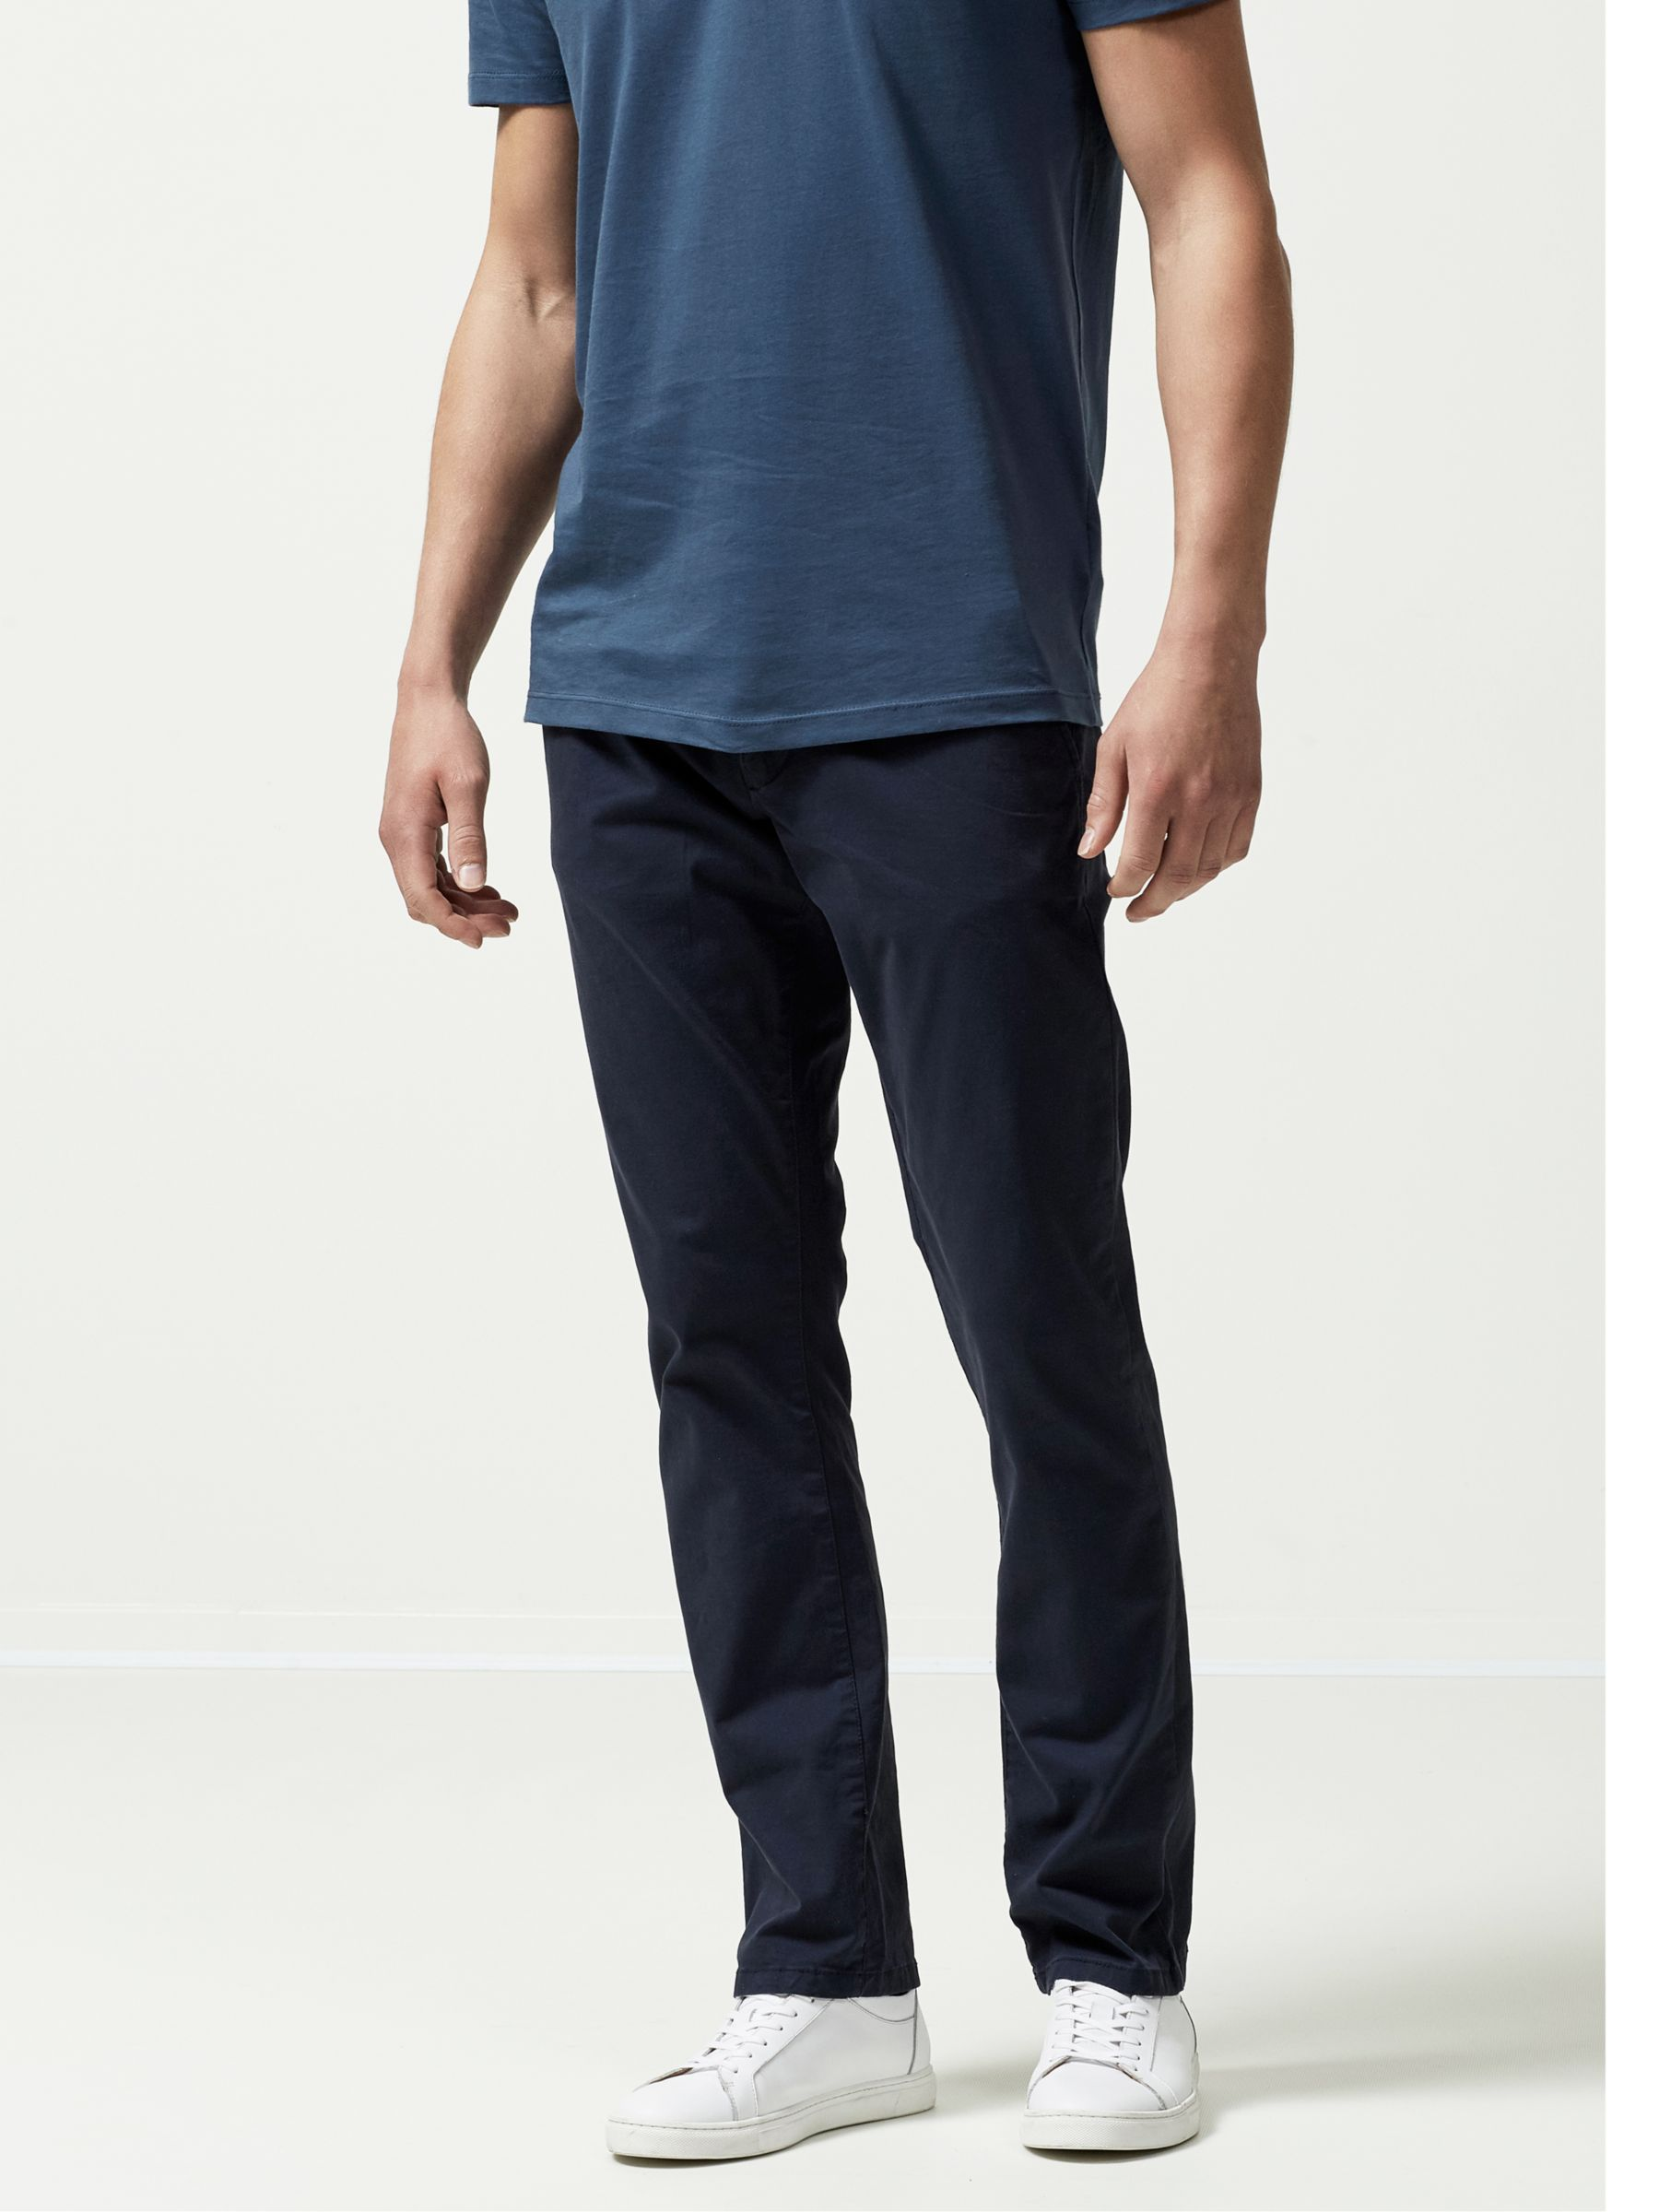 Selected Homme SELECTED HOMME Three Paris Organic Cotton Stretch Chinos